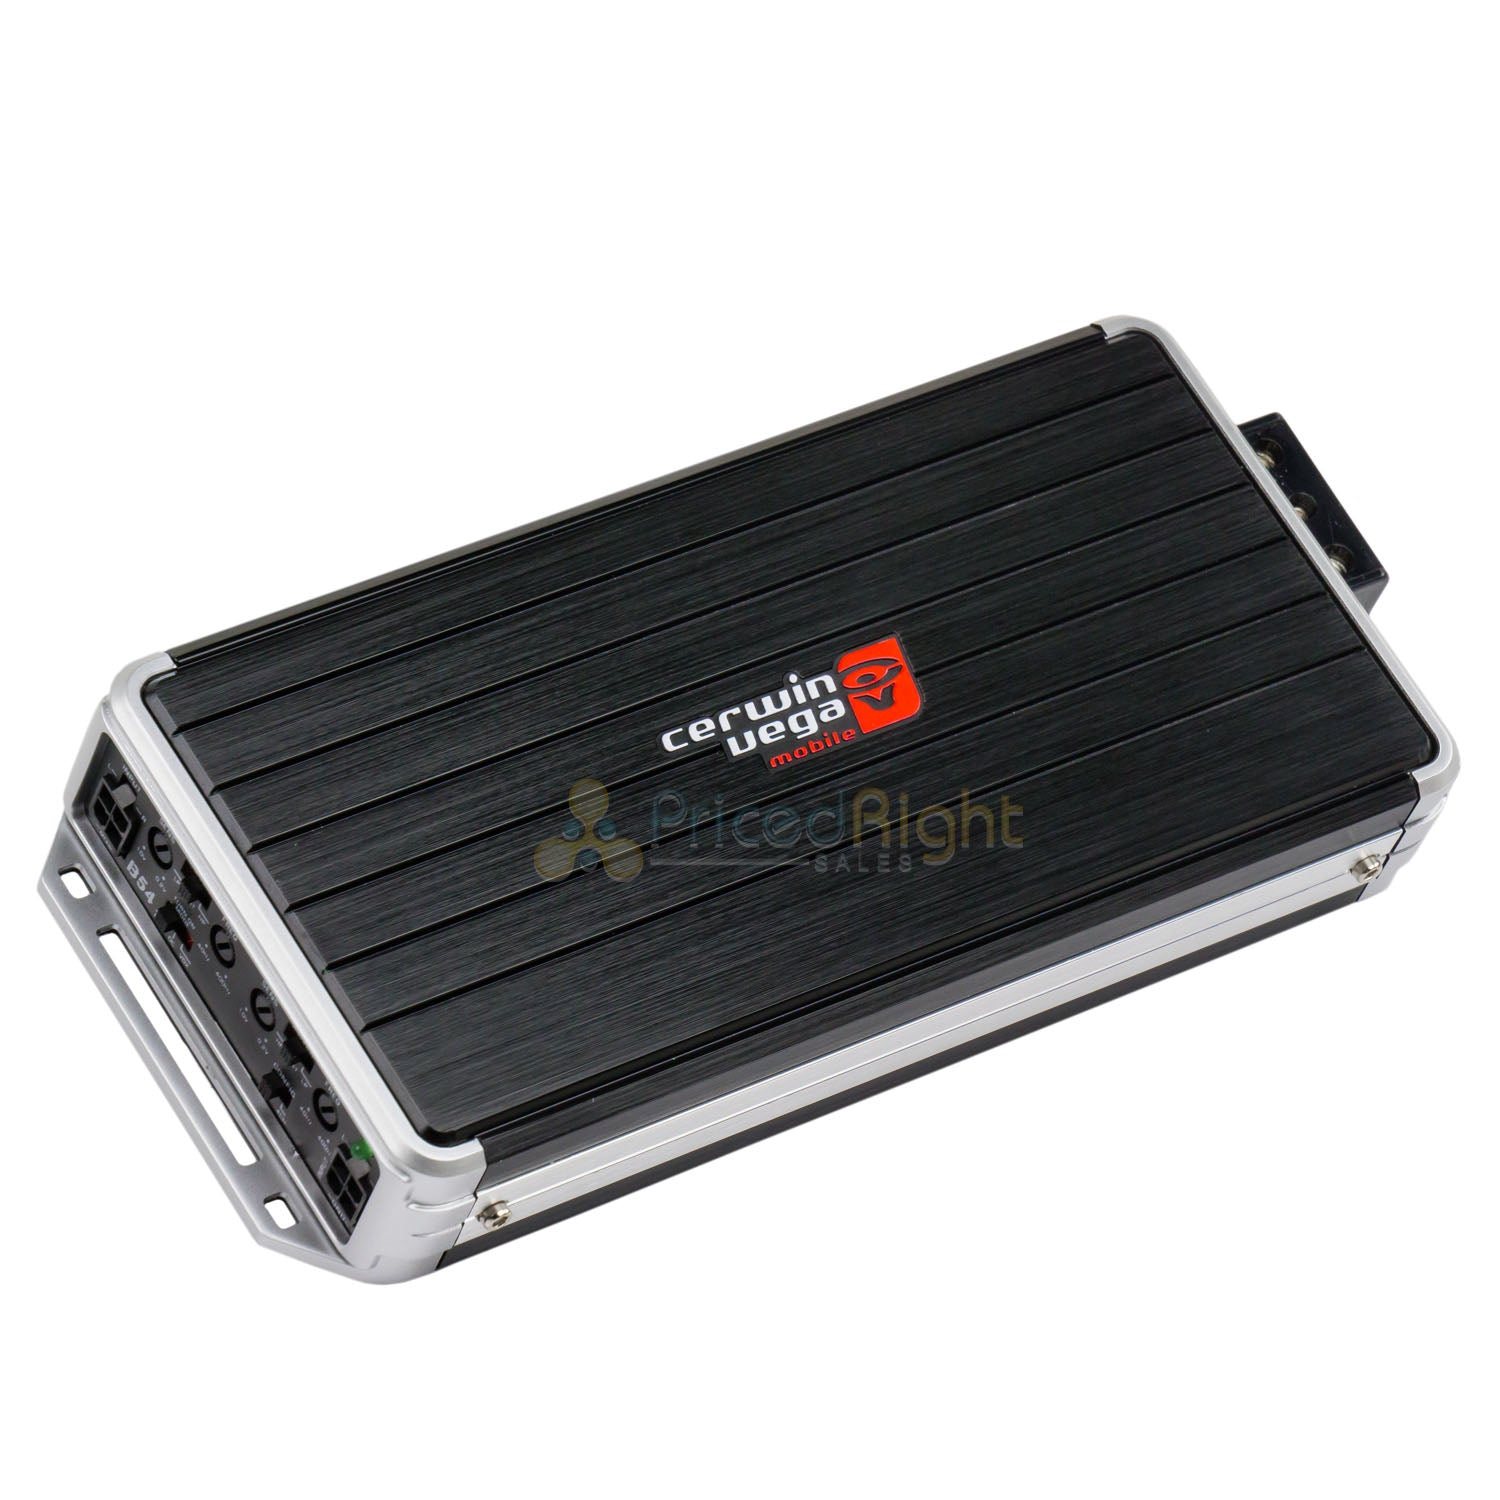 4 Channel Digital Amplifier 1200 Watts Max Power Cerwin Vega B54 Bomber Series